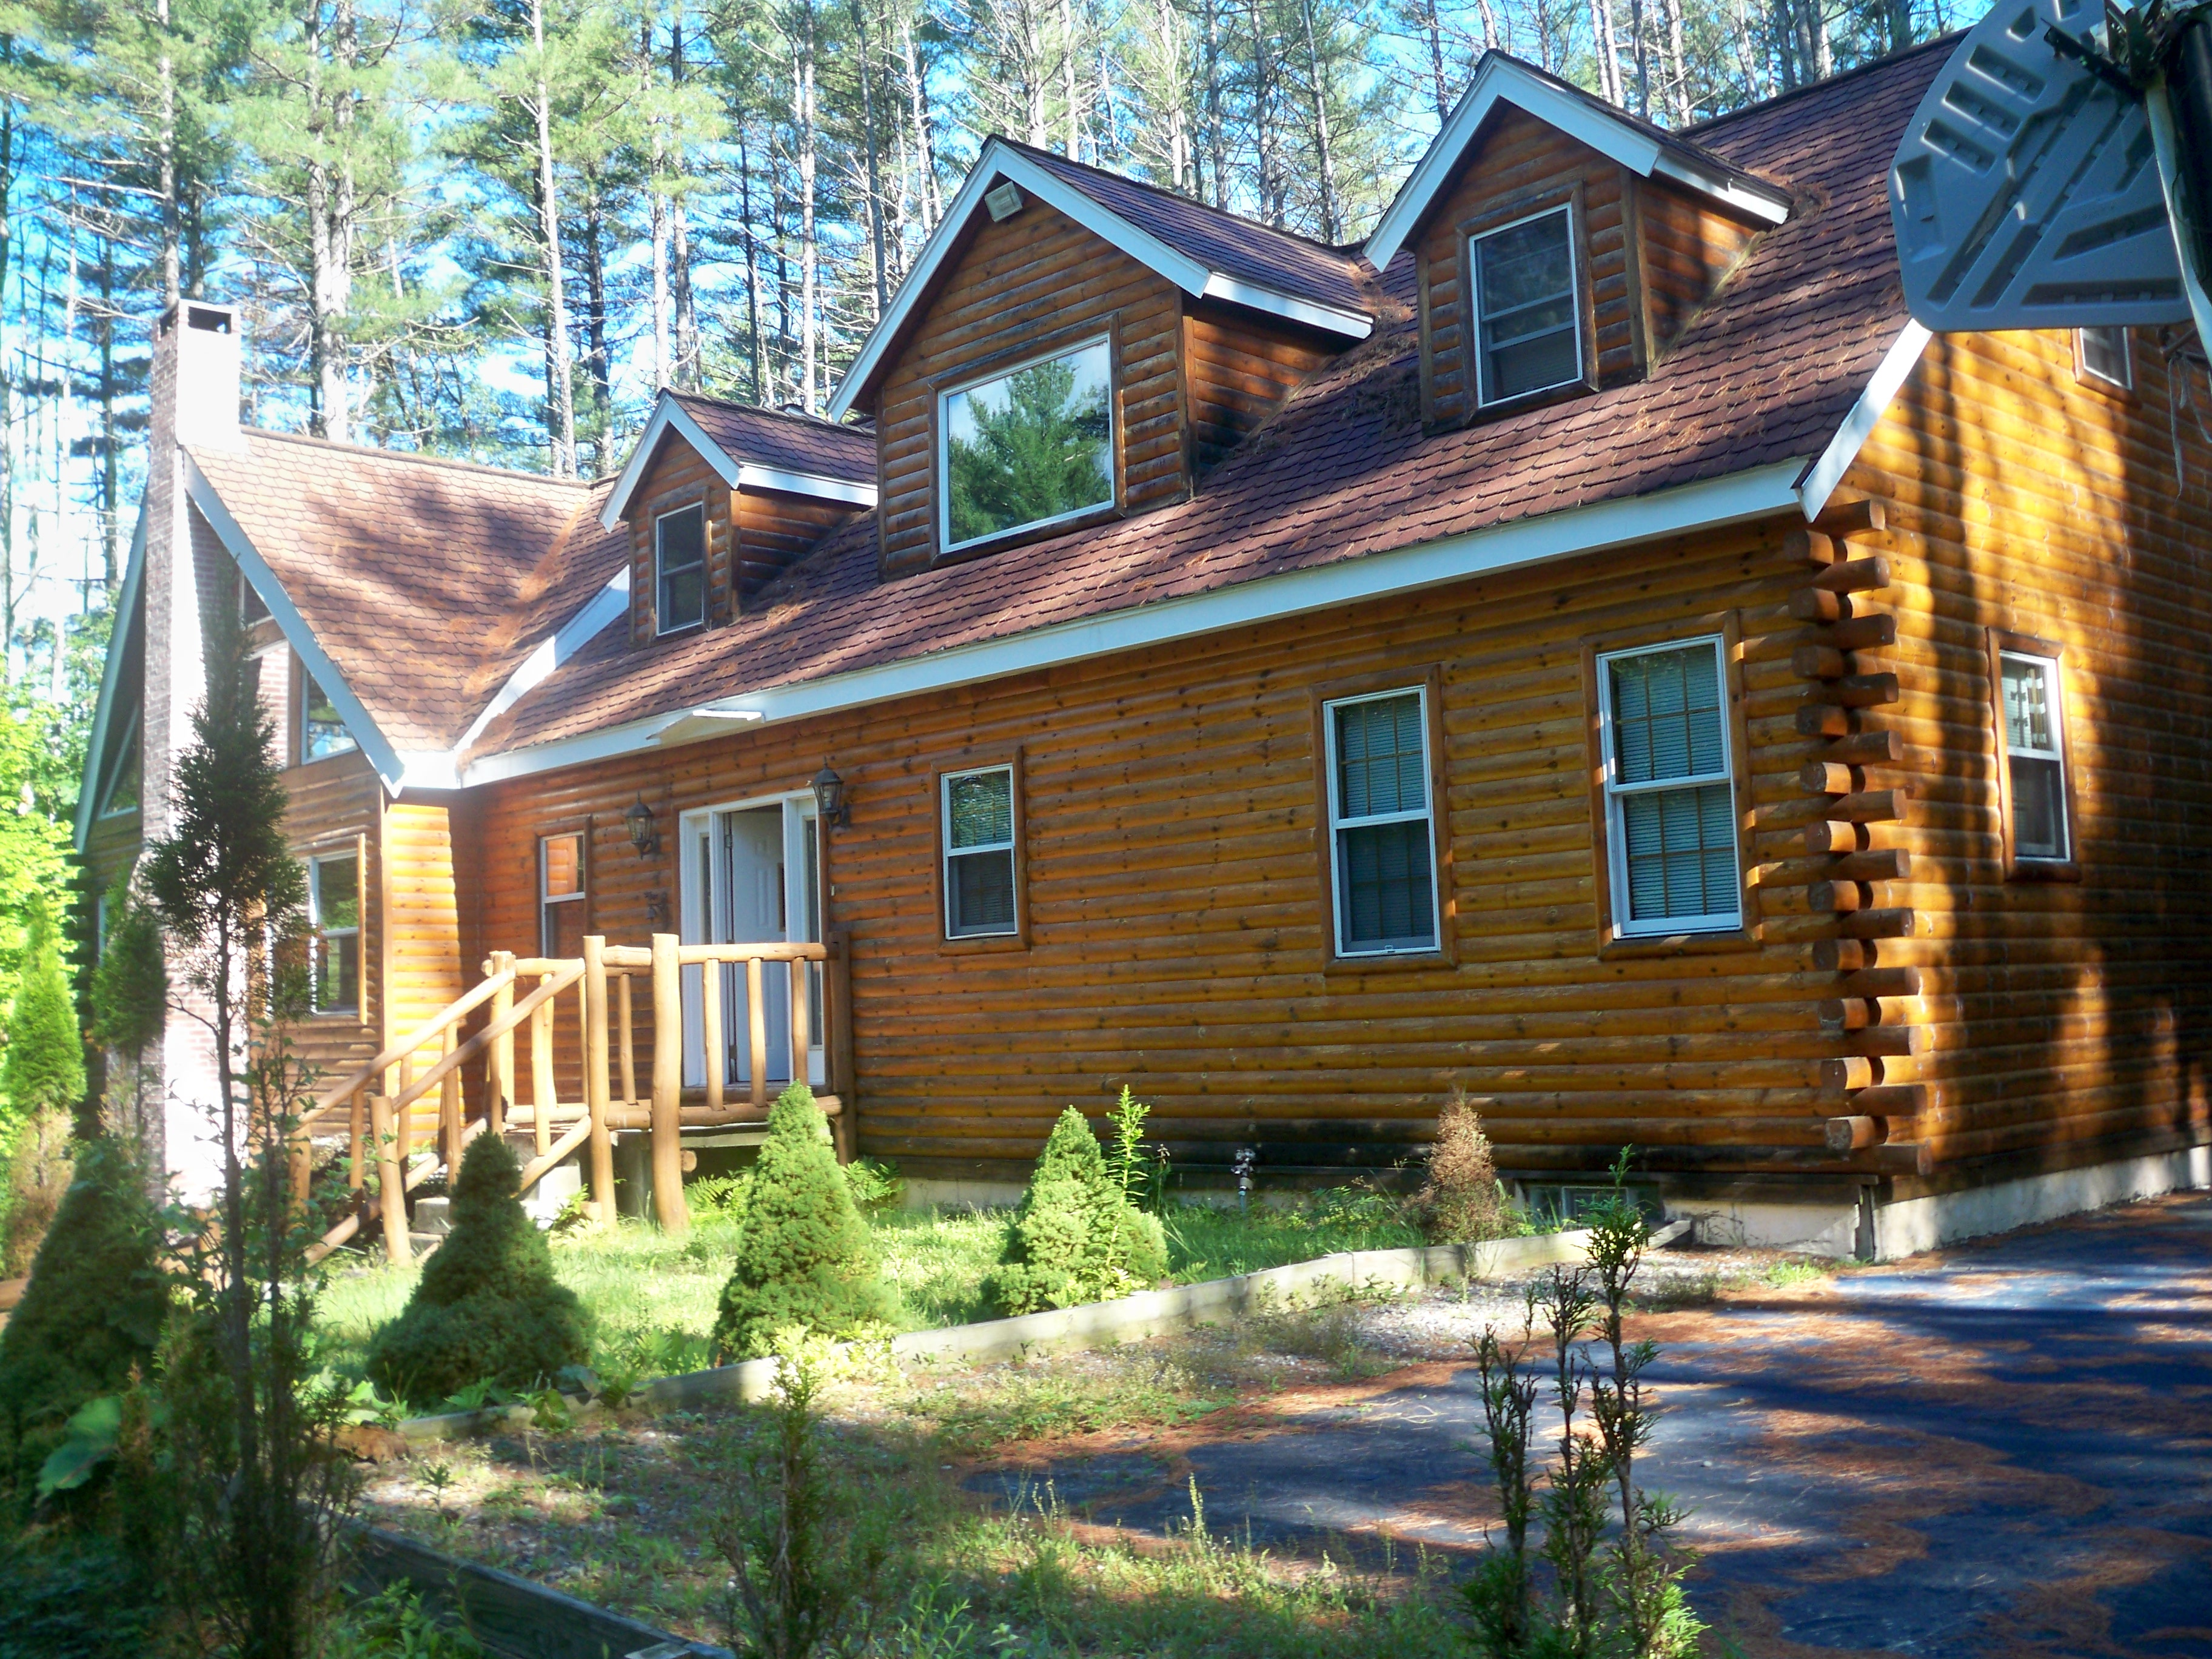 Spectacular Log Home With Indoor Pool And Hot Tub Houses For Rent In Campton New Hampshire United States